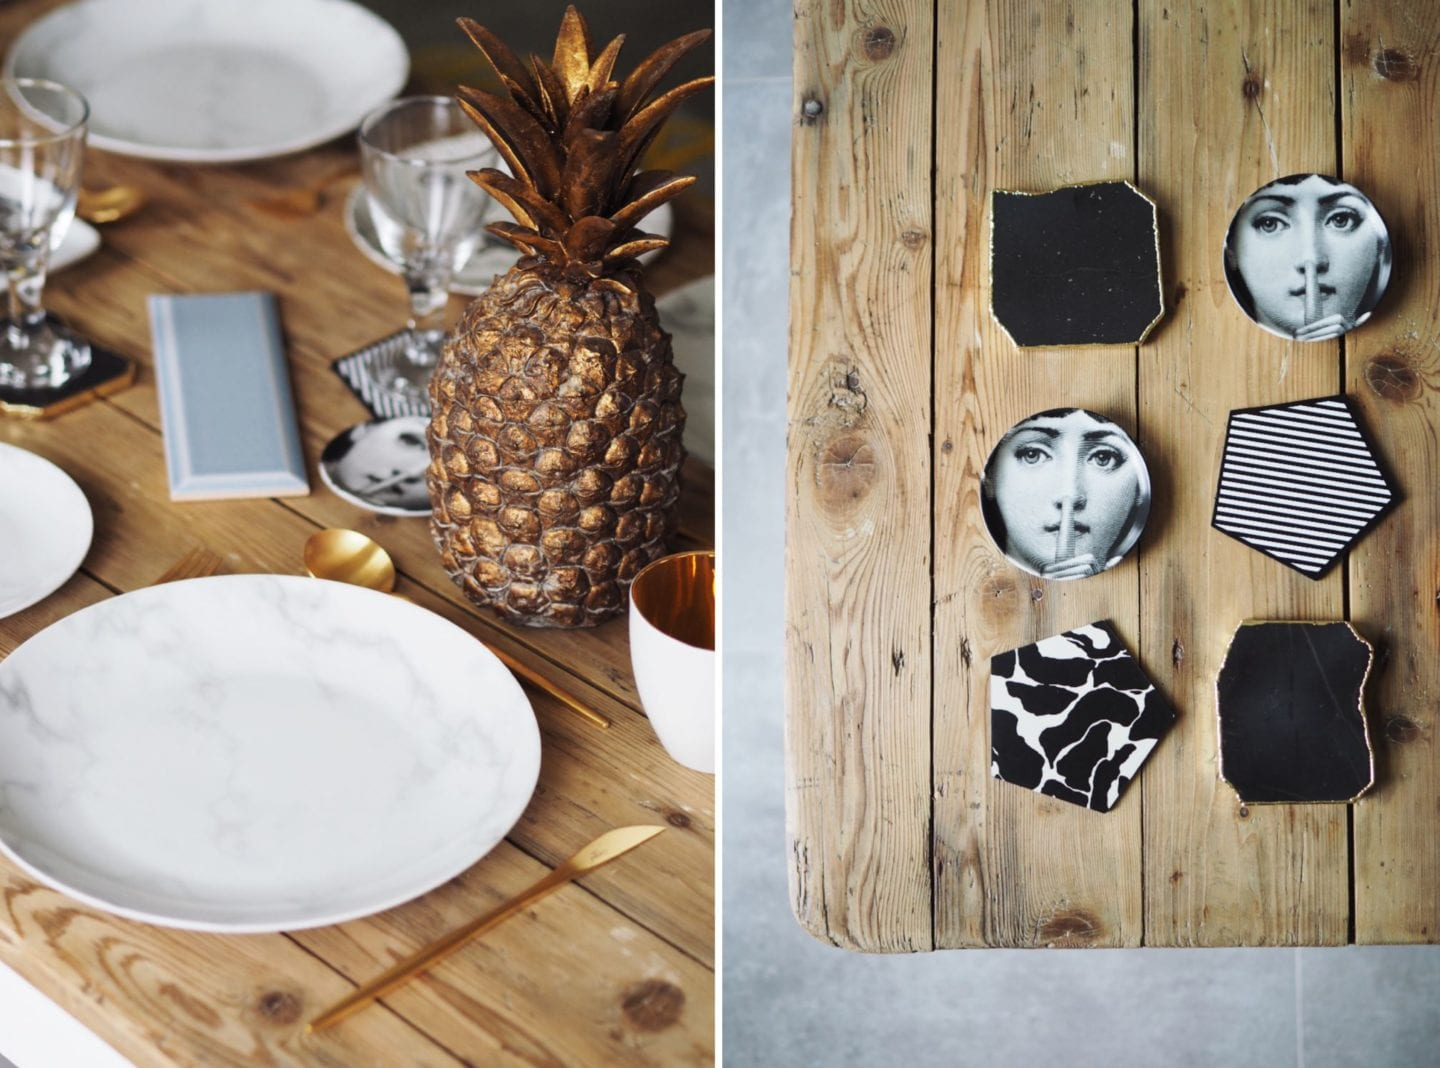 fornasetti coasters and anthropologie agate coasters